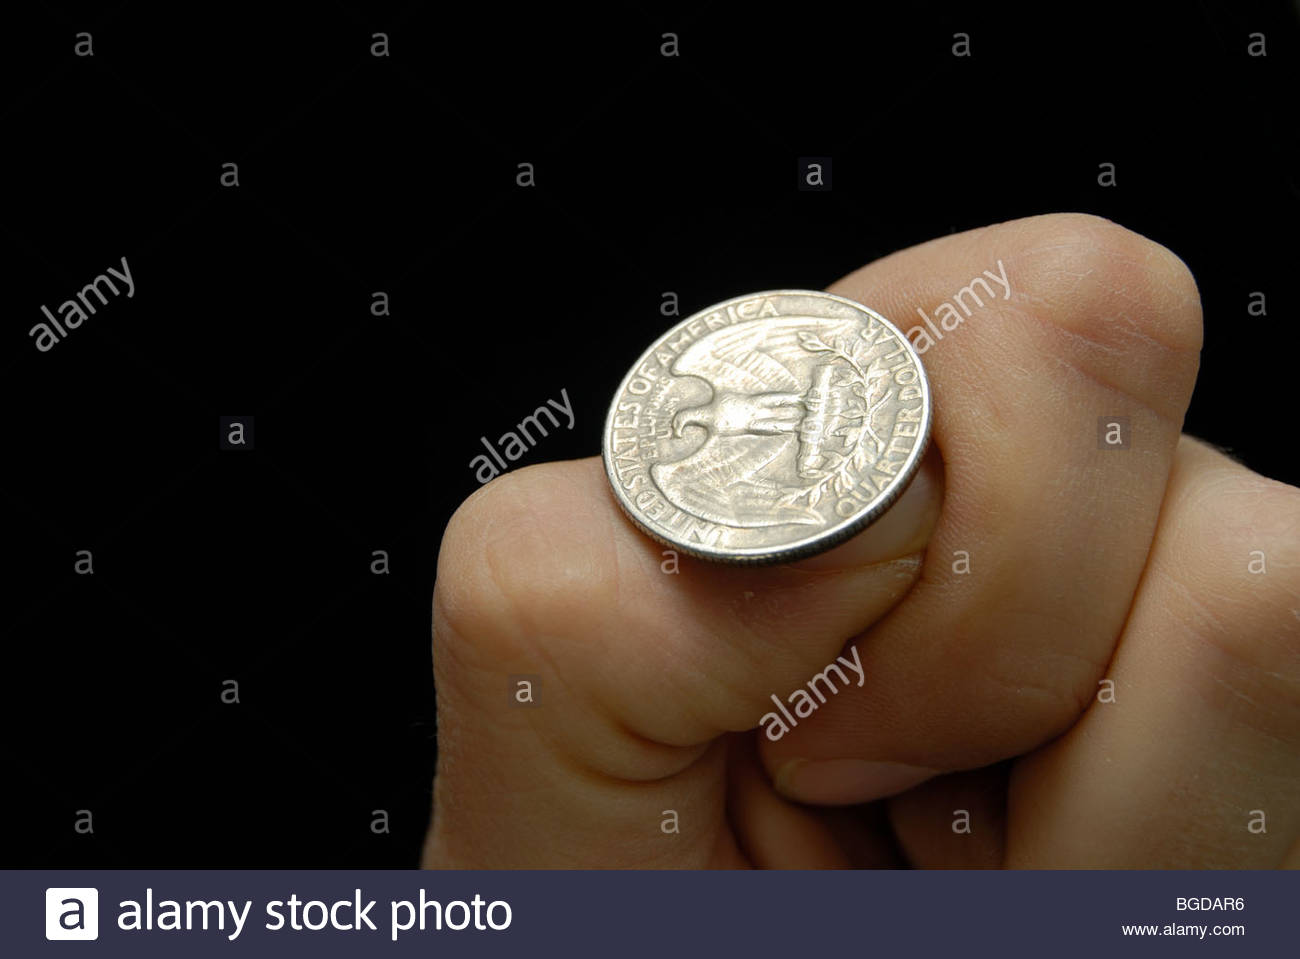 Flipping a US quarter (25c) coin. - Stock Image